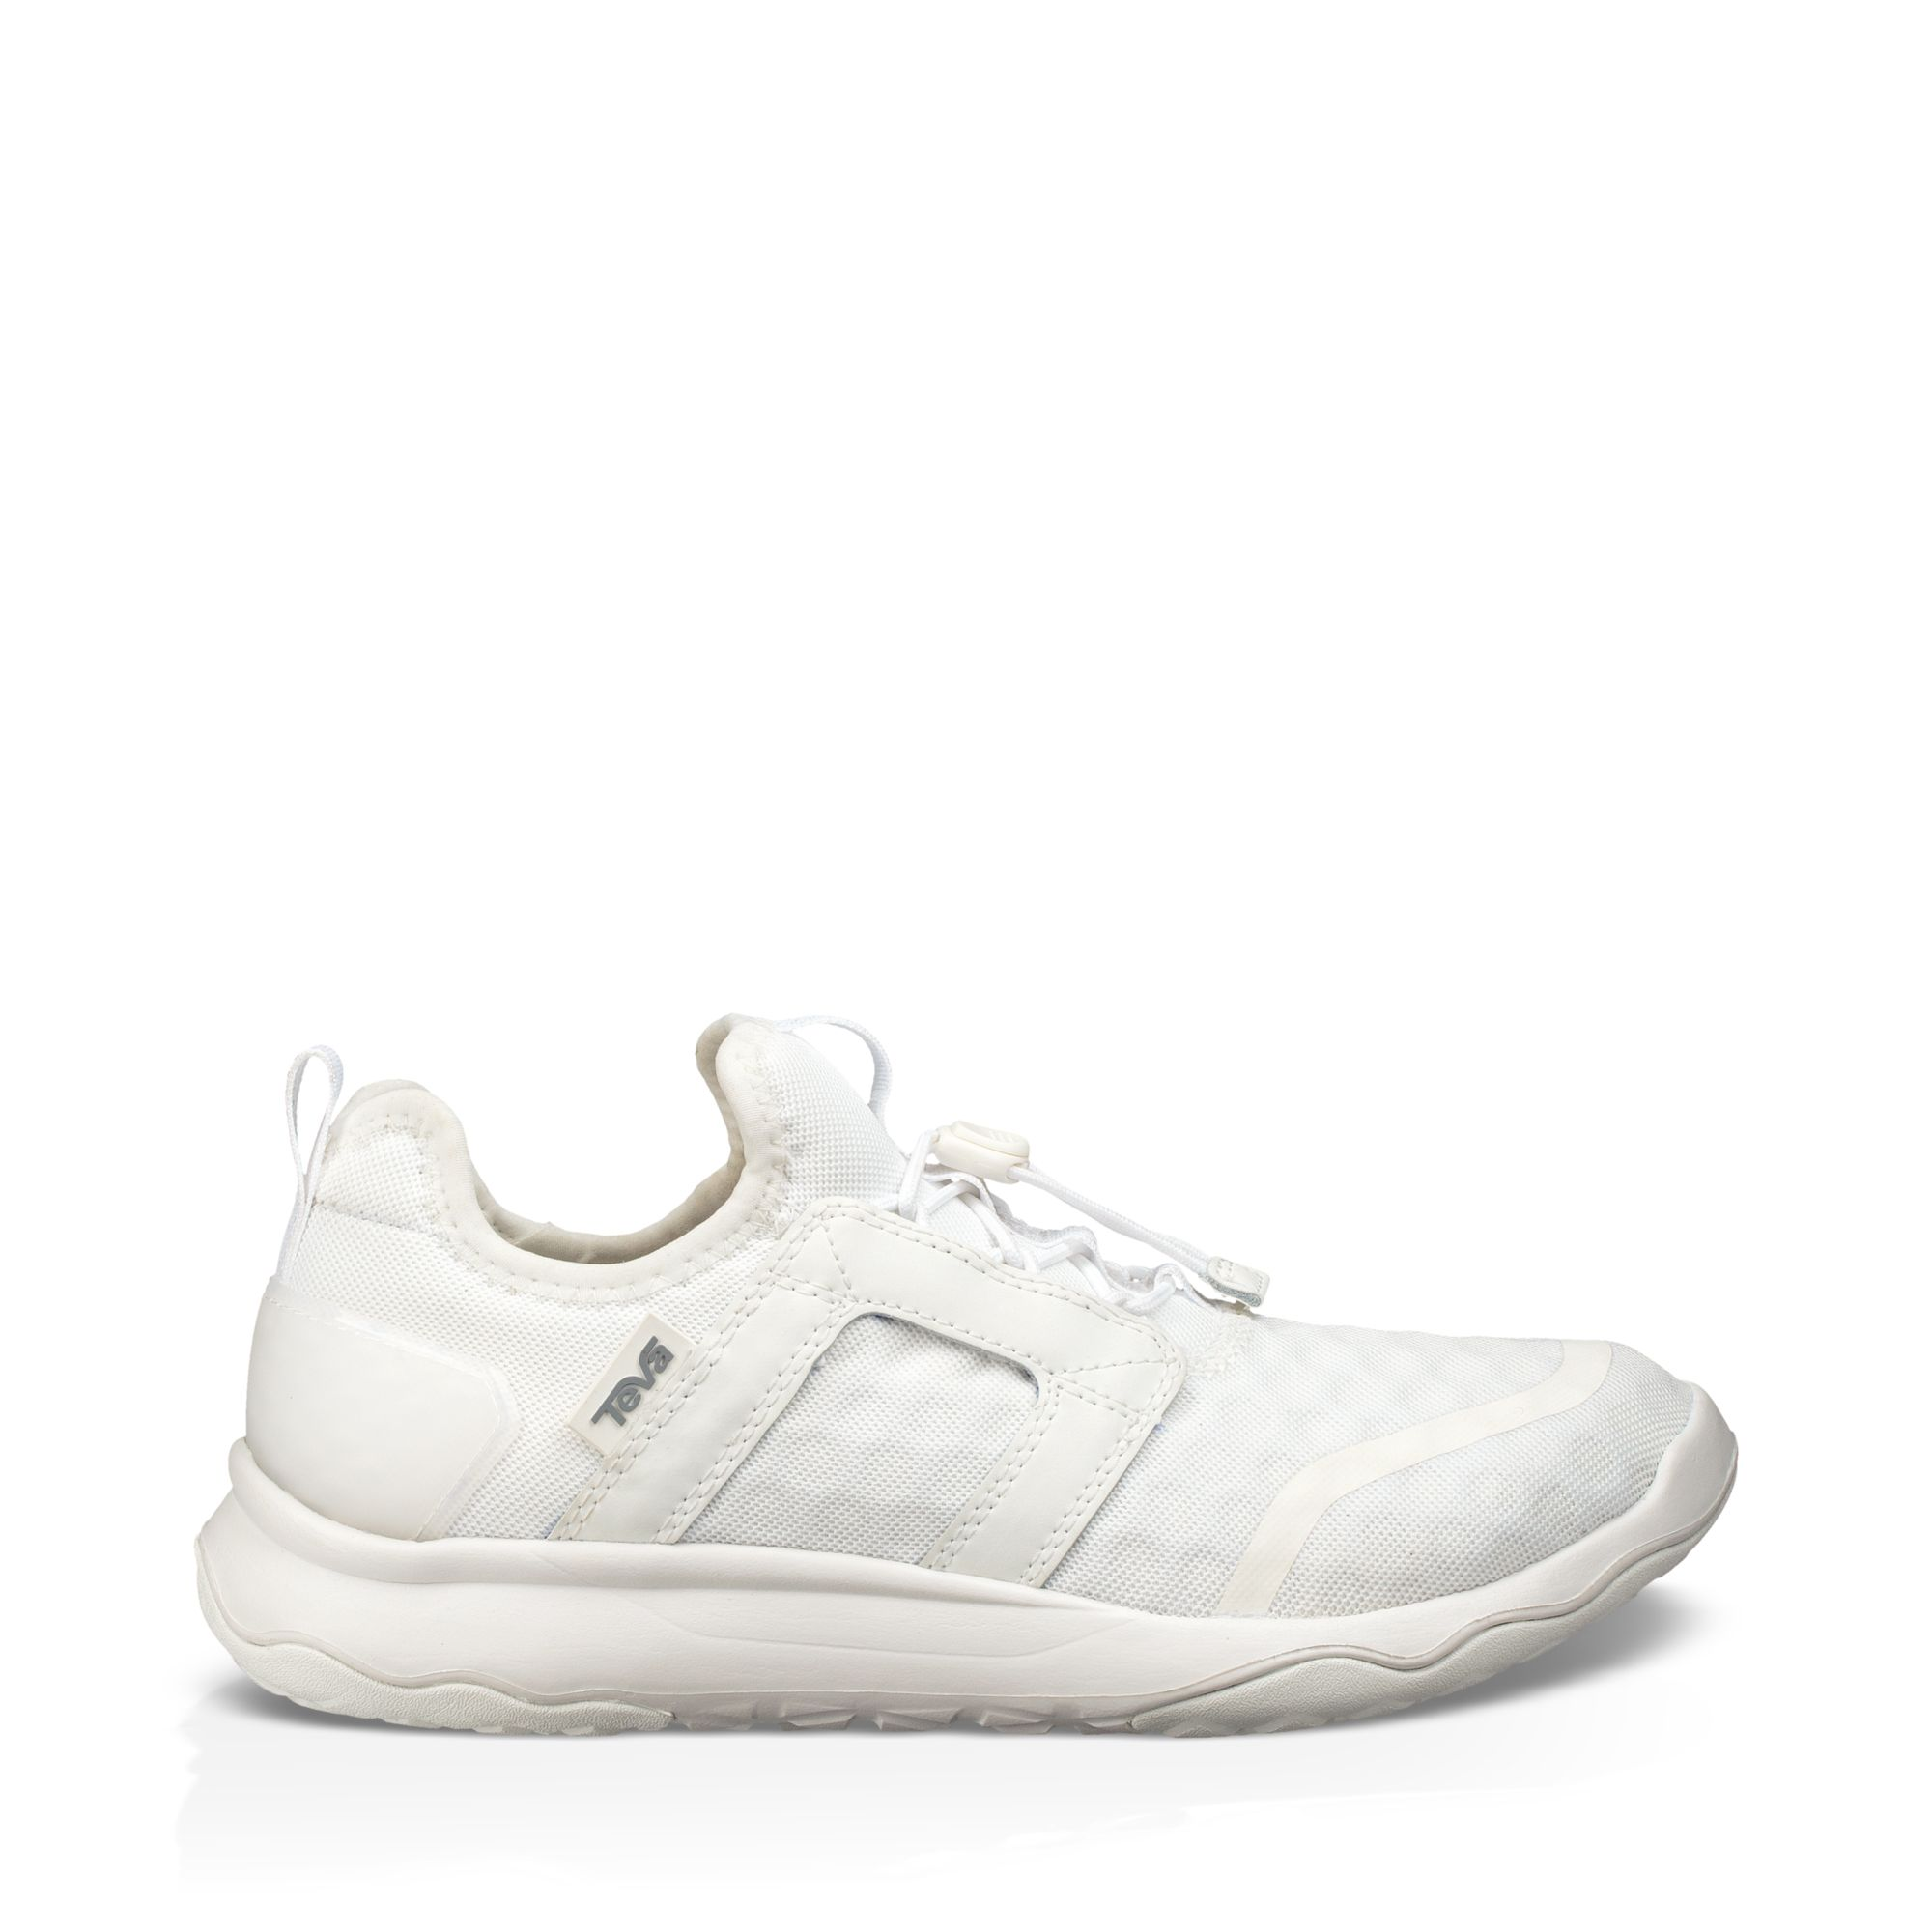 db53747e9 Our Arrowood Swift Lace - a light and sporty sneaker that keeps its cool